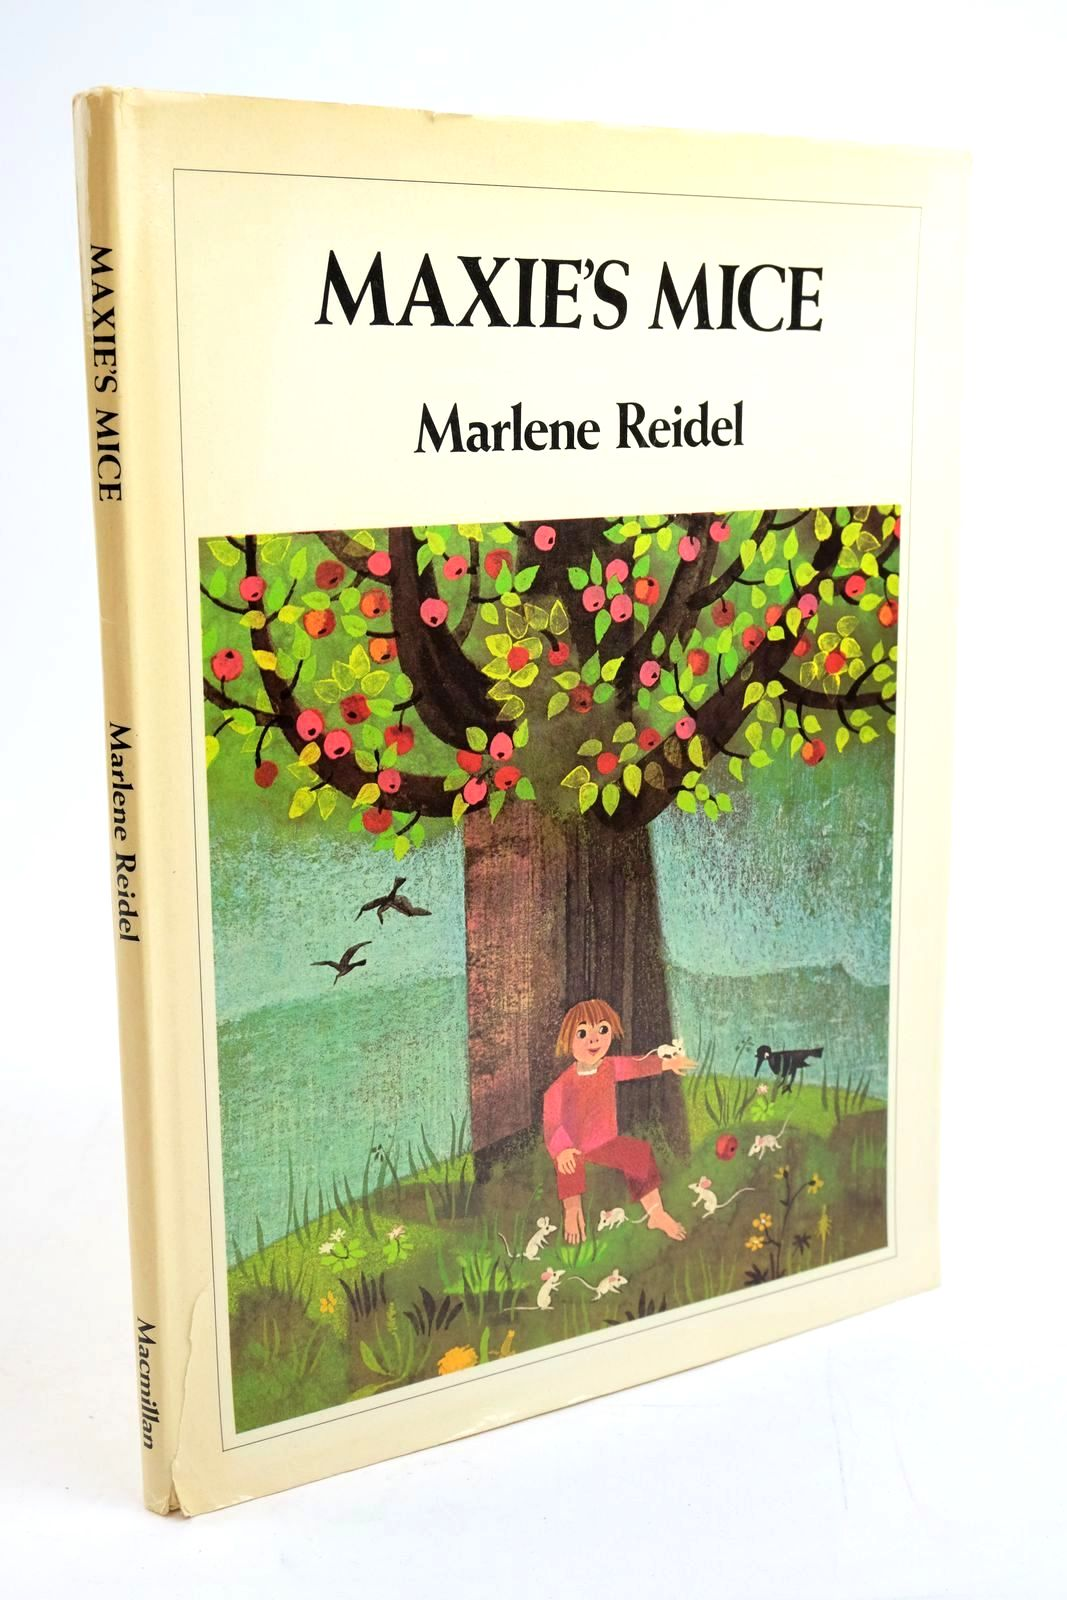 Photo of MAXIE'S MICE written by Reidel, Marlene illustrated by Reidel, Marlene published by MacMillan (STOCK CODE: 1321615)  for sale by Stella & Rose's Books